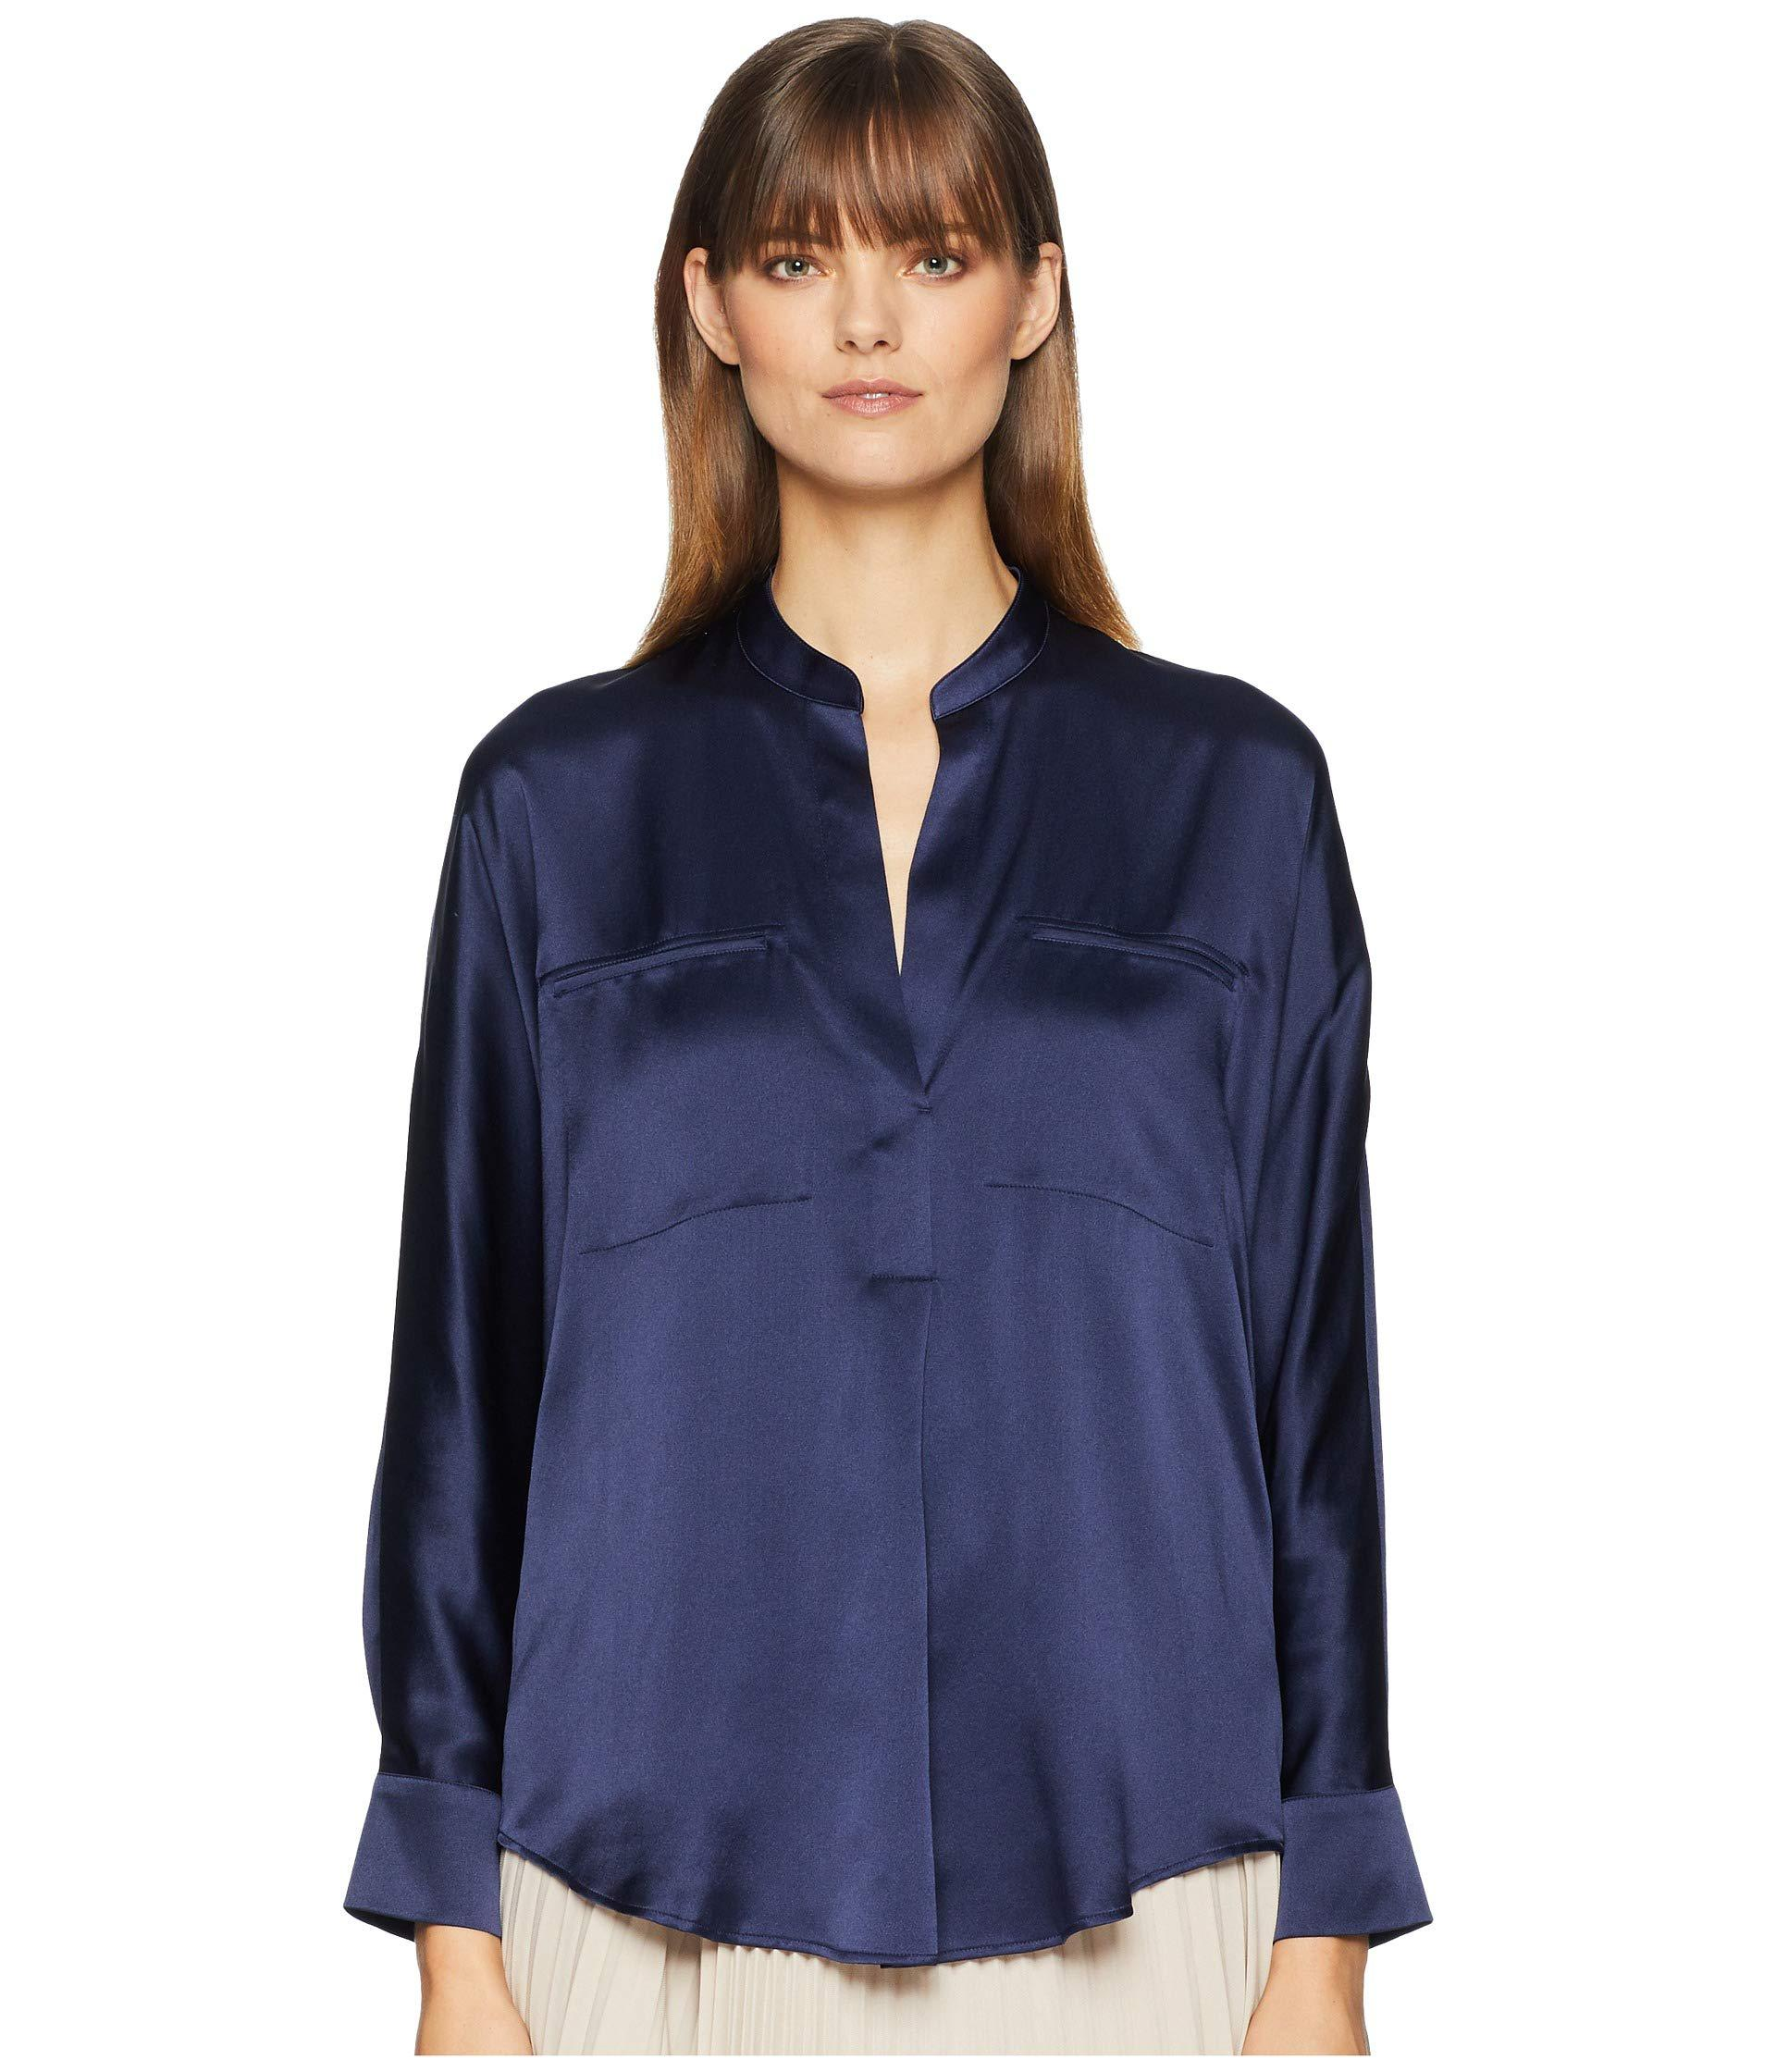 bf755c765a091 Lyst - Vince Collar Band Popover (marine Blue) Women s Clothing in Blue